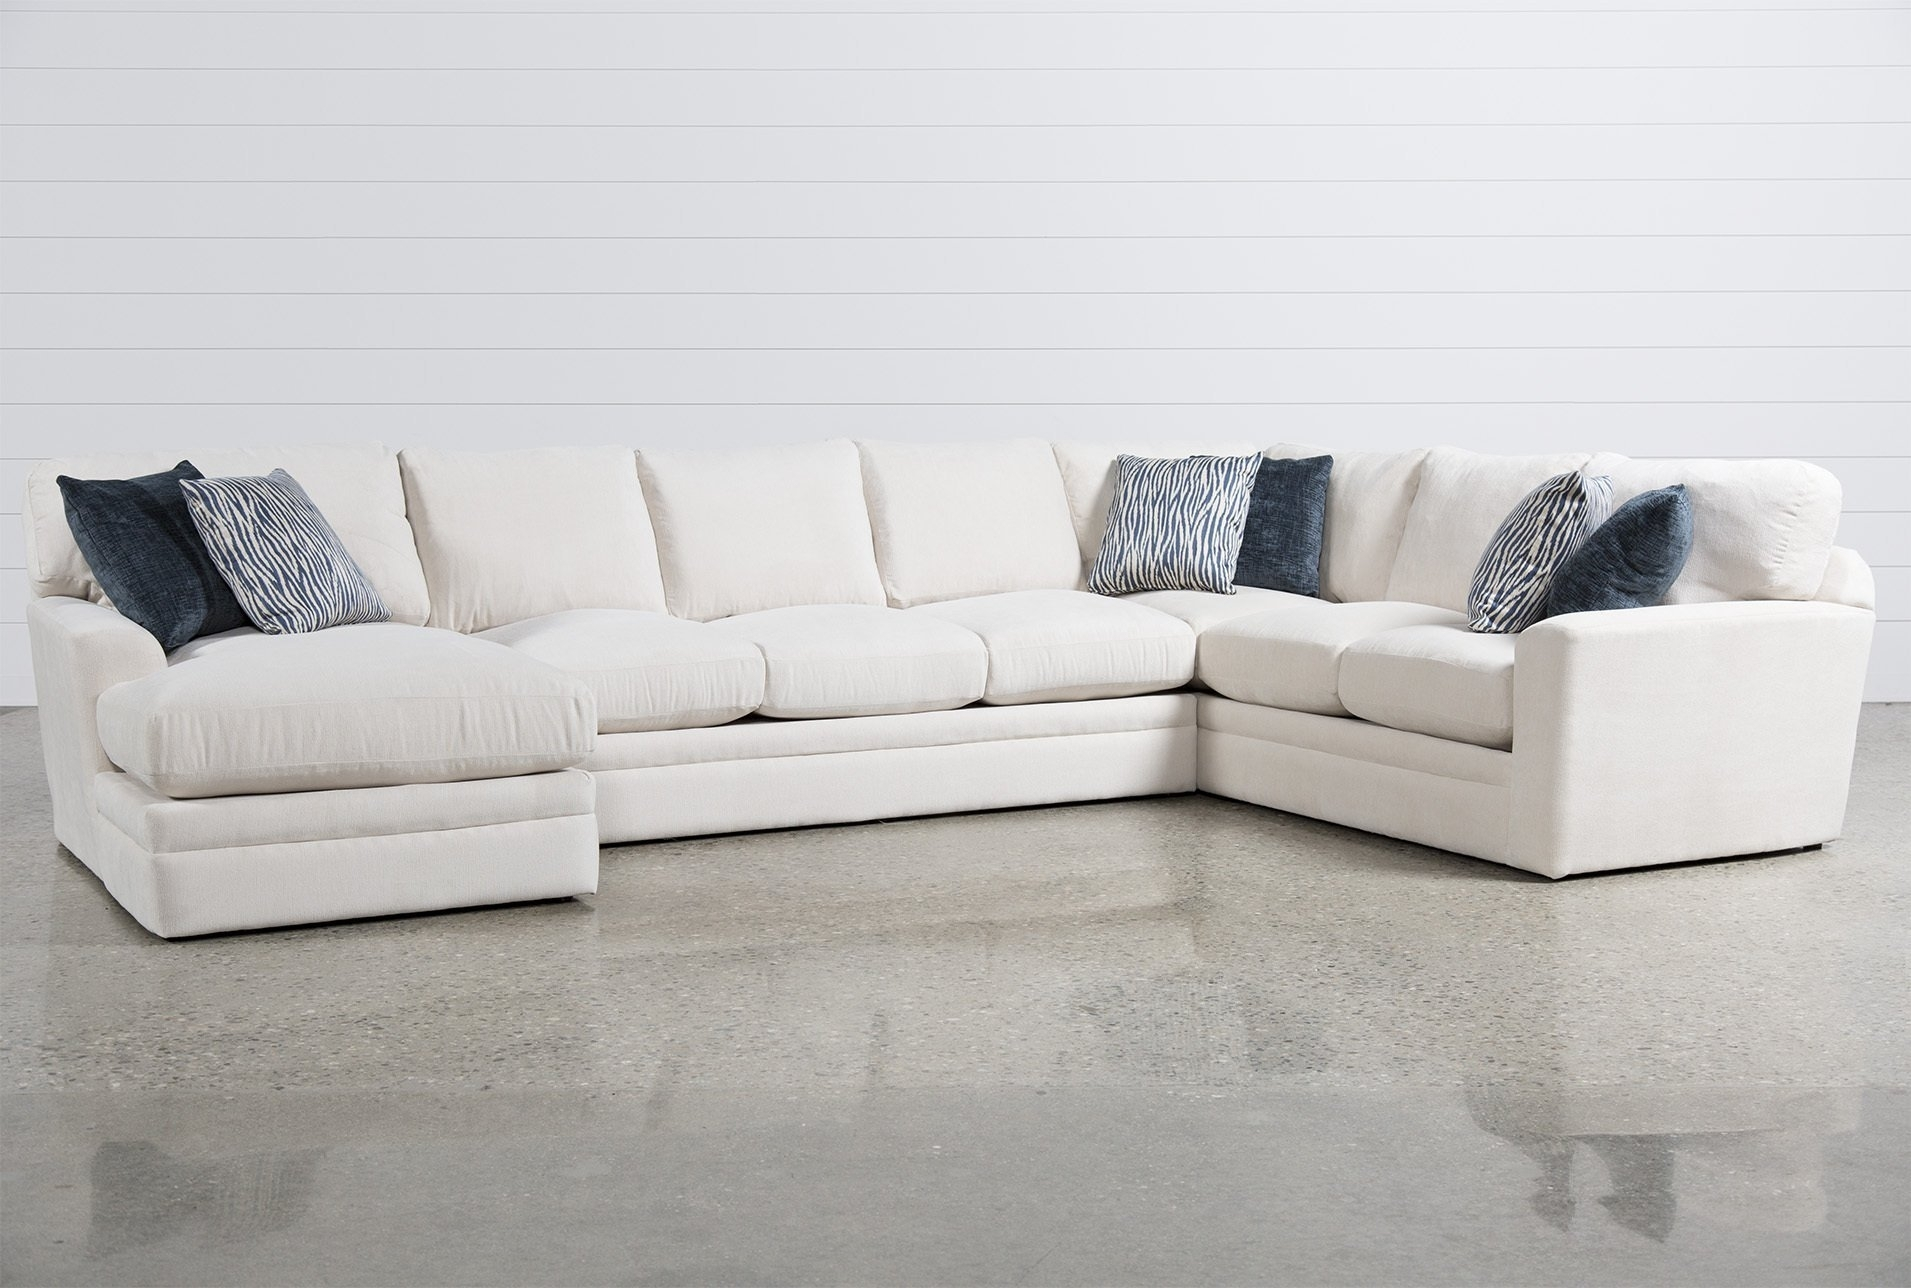 Remarkable Glamour Ii Piece Sectional Has Been Successfully Added To Intended For Mesa Foam 2 Piece Sectionals (Image 17 of 25)